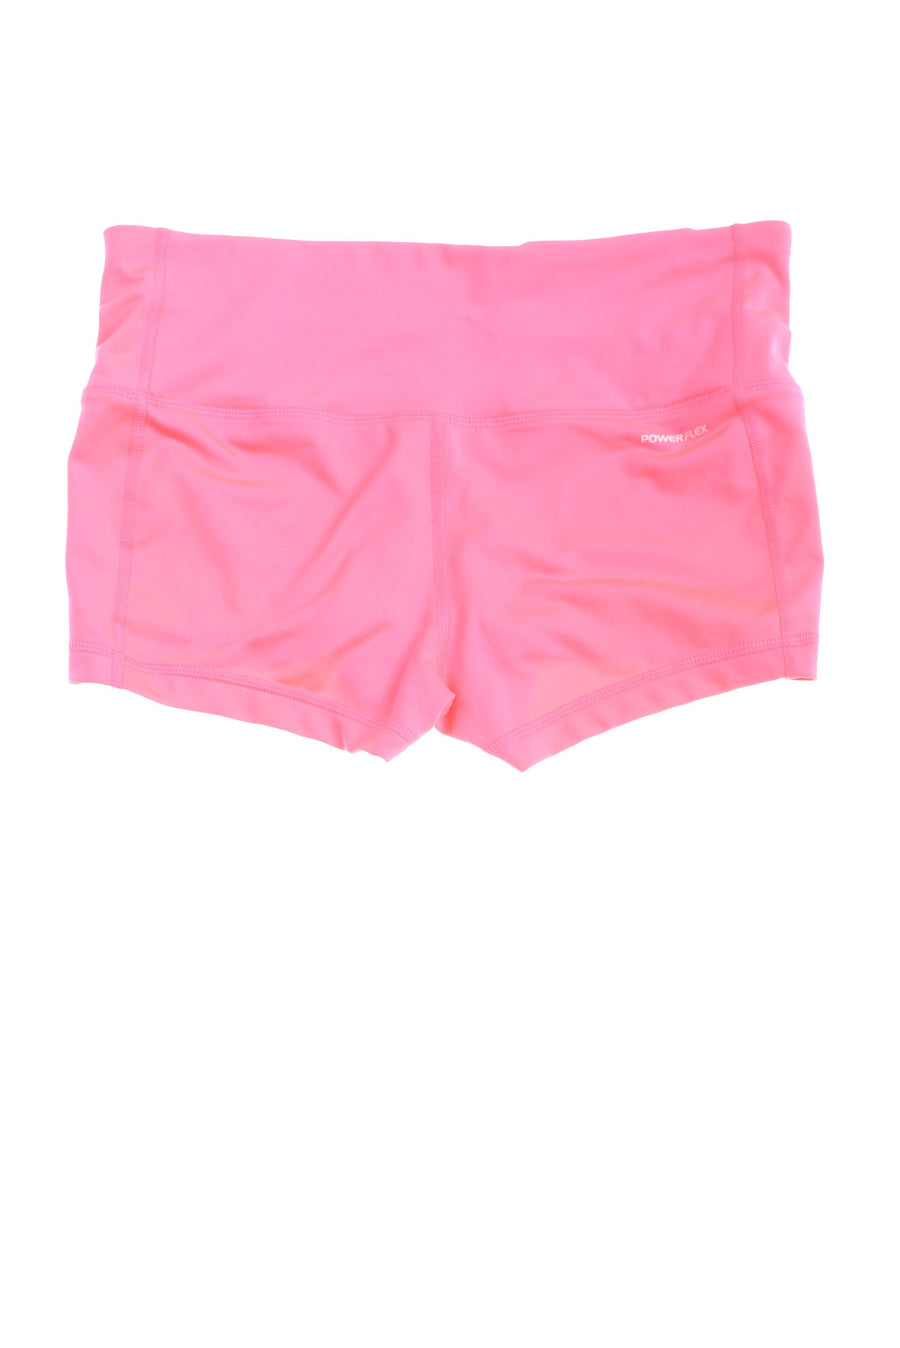 USED Champion Women's Shorts Small Pink